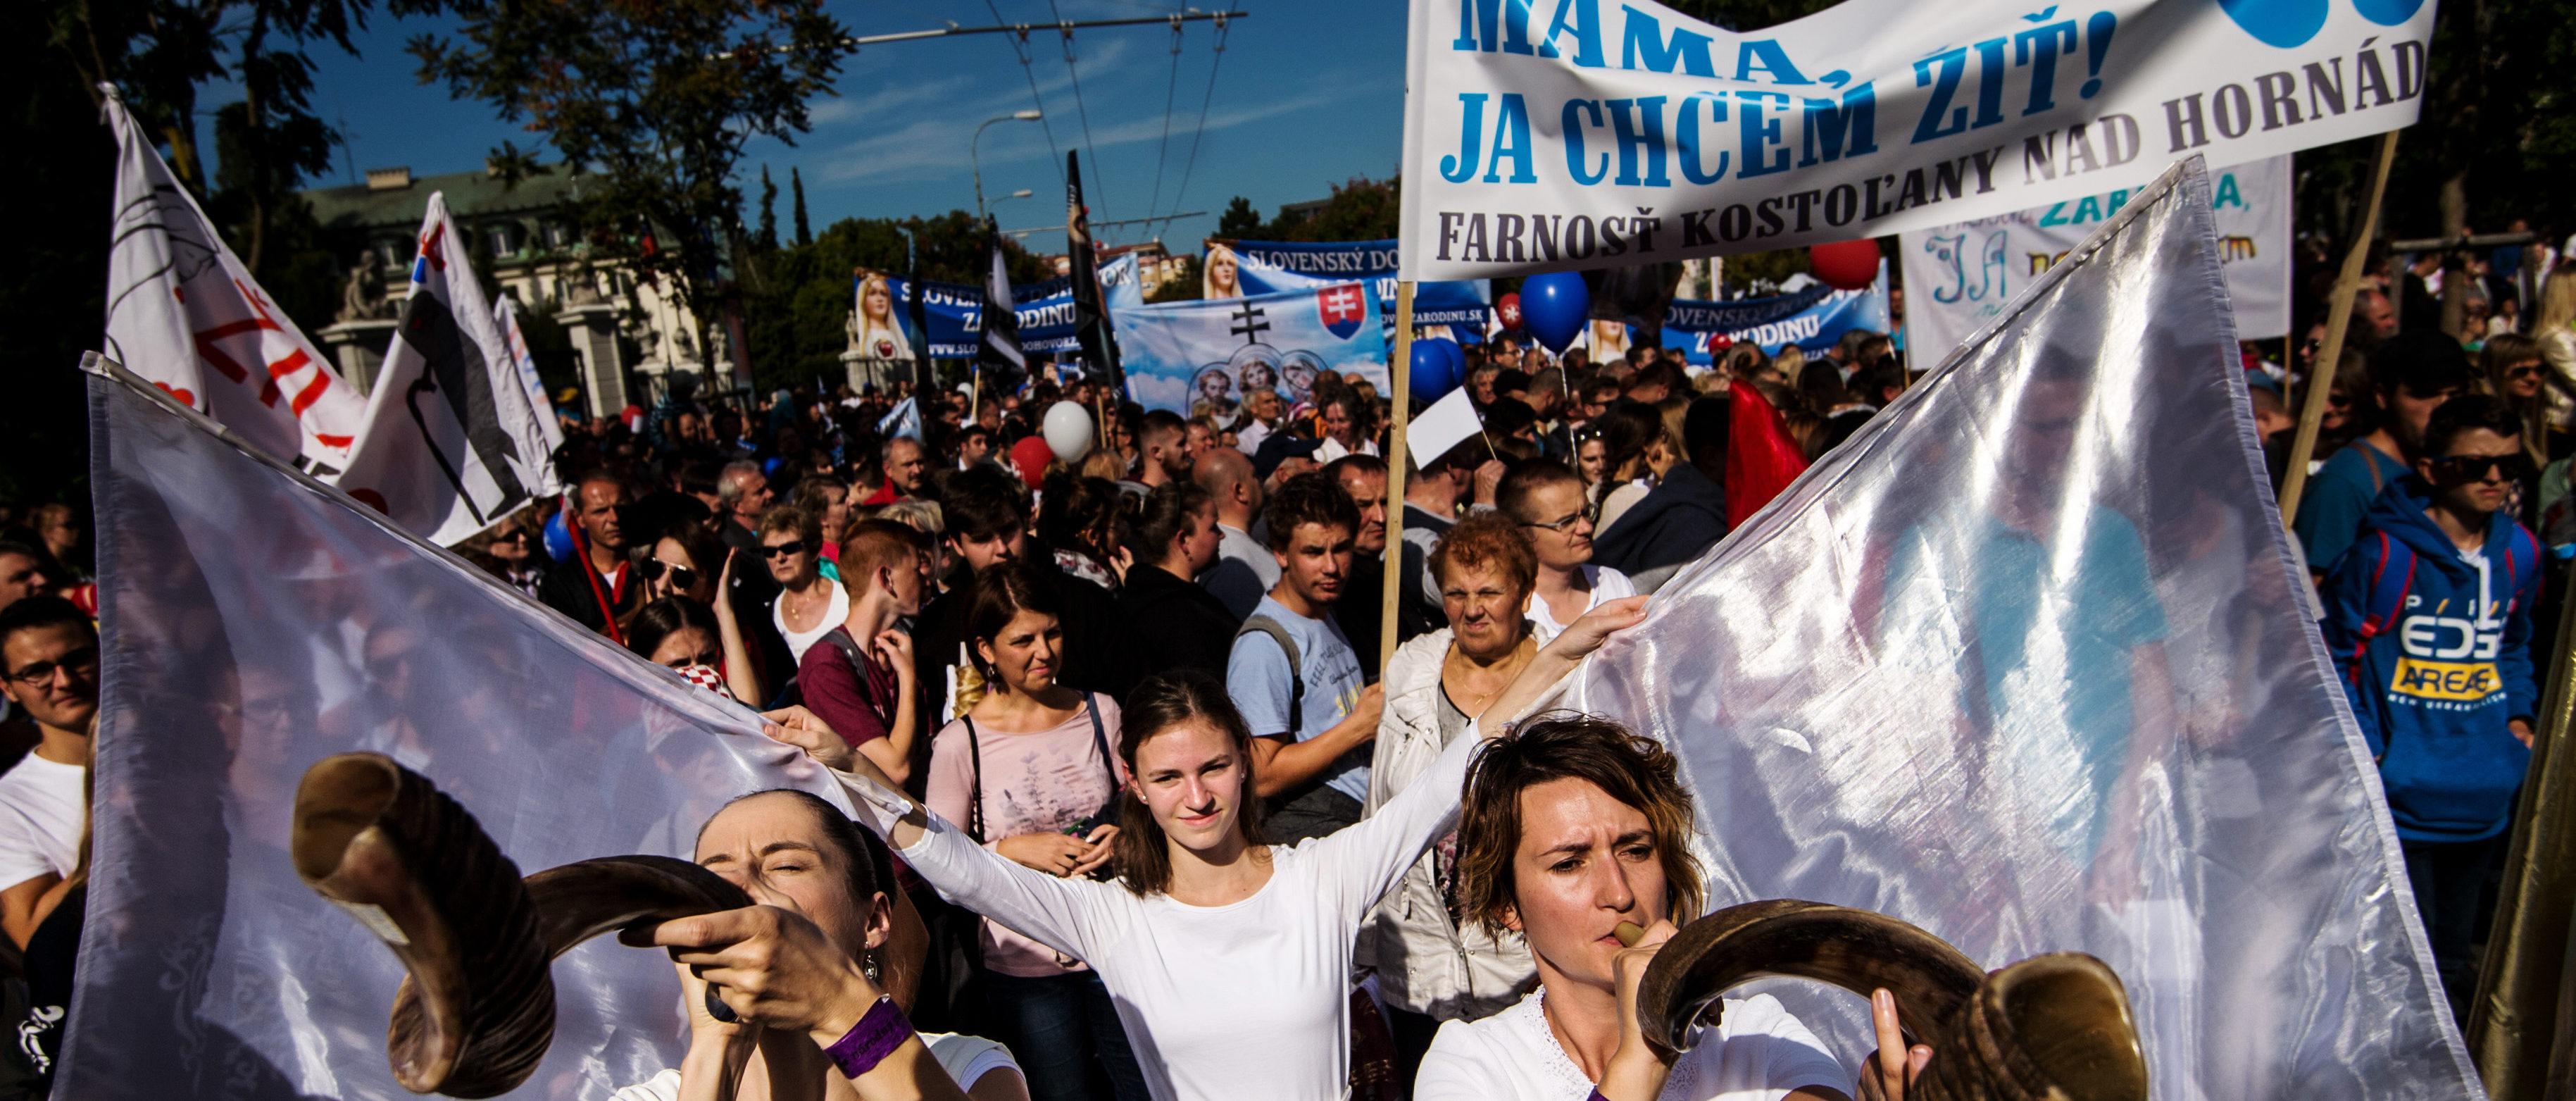 50,000 Slovakians Demand A Ban On Abortions In Annual March For Life